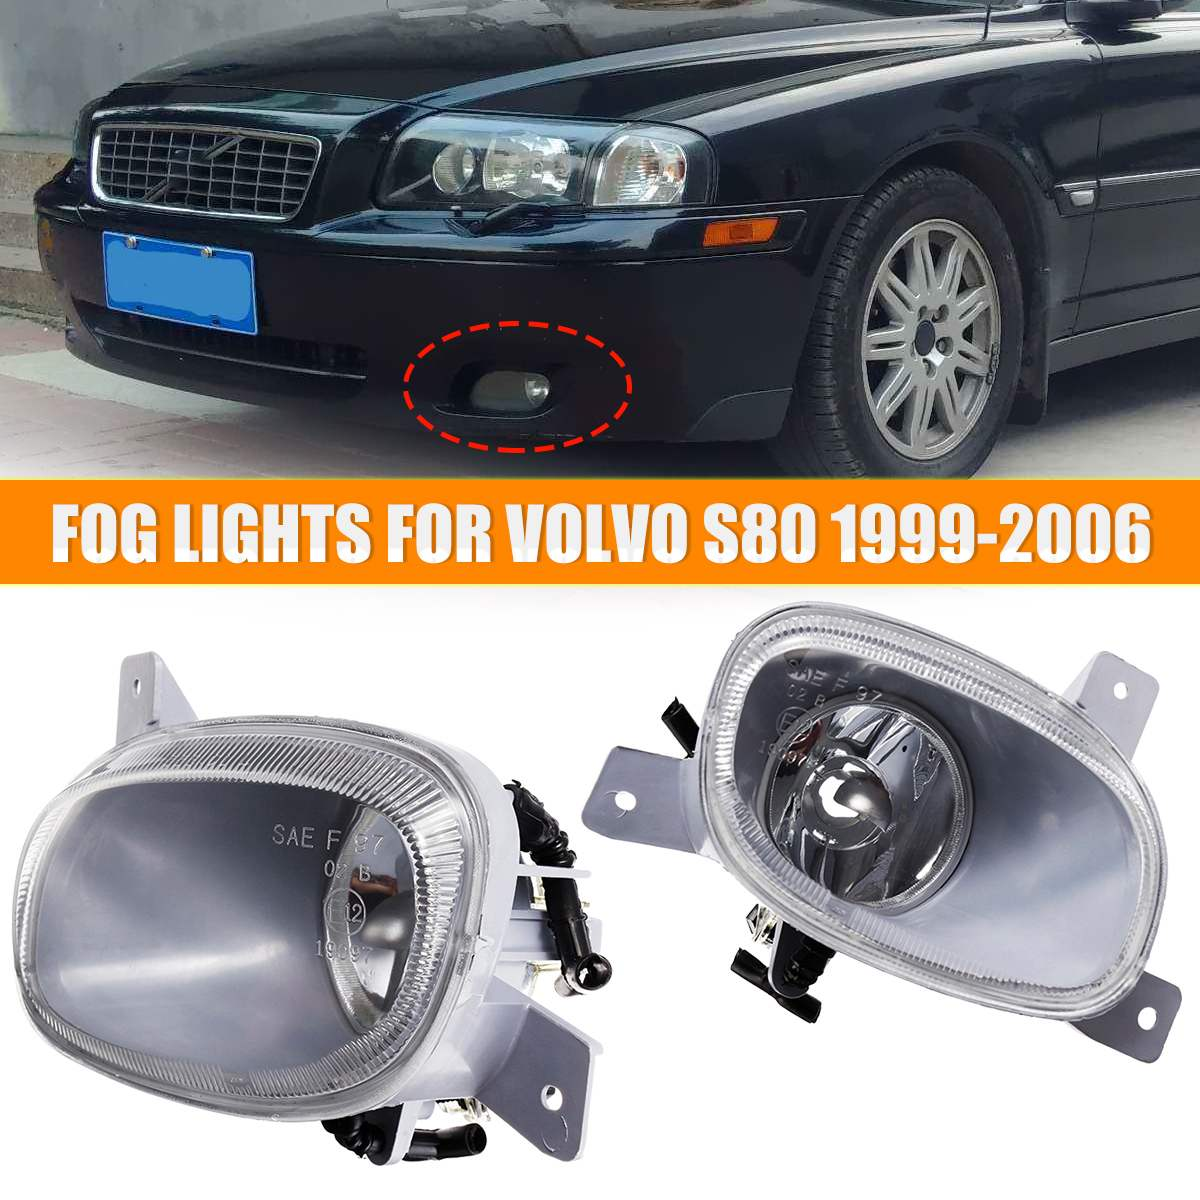 Car Fog Light For Volvo S80 1999 2000 2001 2002 2003 2004 2005 2006 Car Front Bumper Fog Lights With No Bulb Left Right #8620224